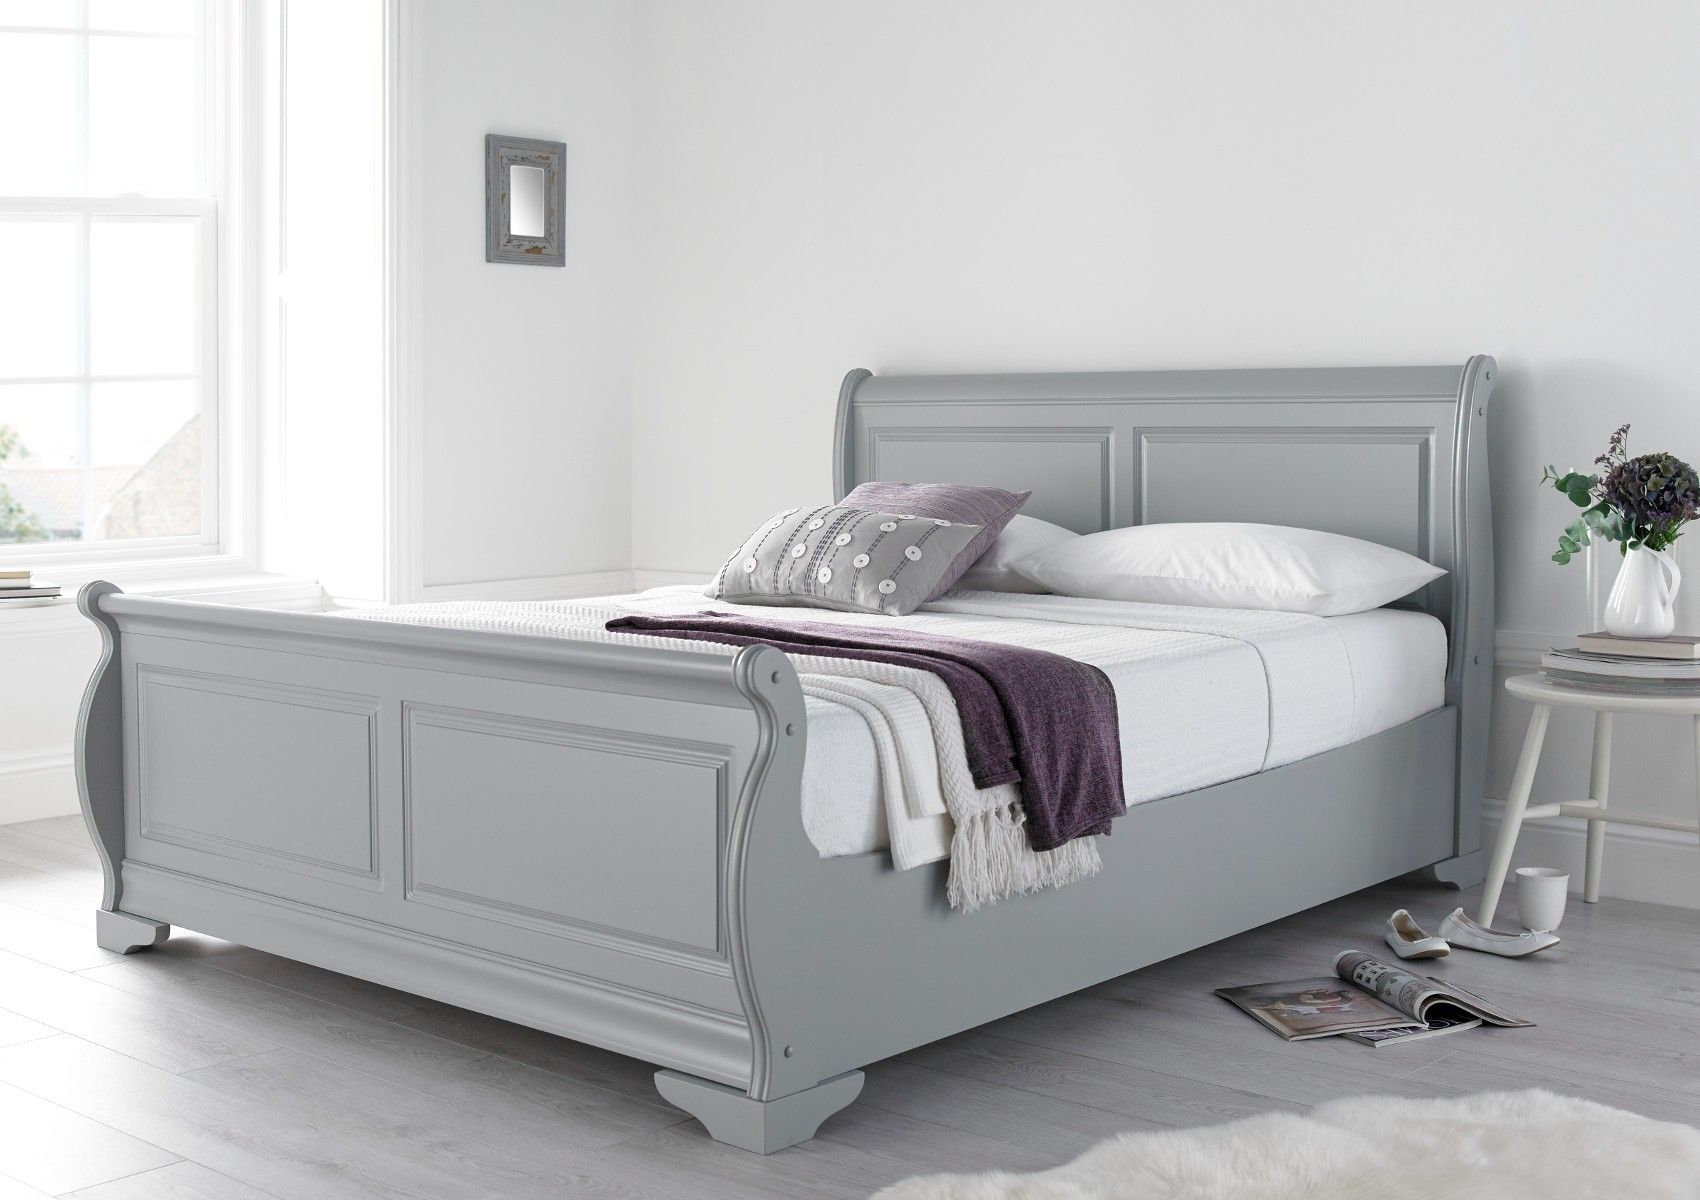 Louie Wooden Sleigh Bed Grey Grey Bed Frame Wooden Sleigh Bed